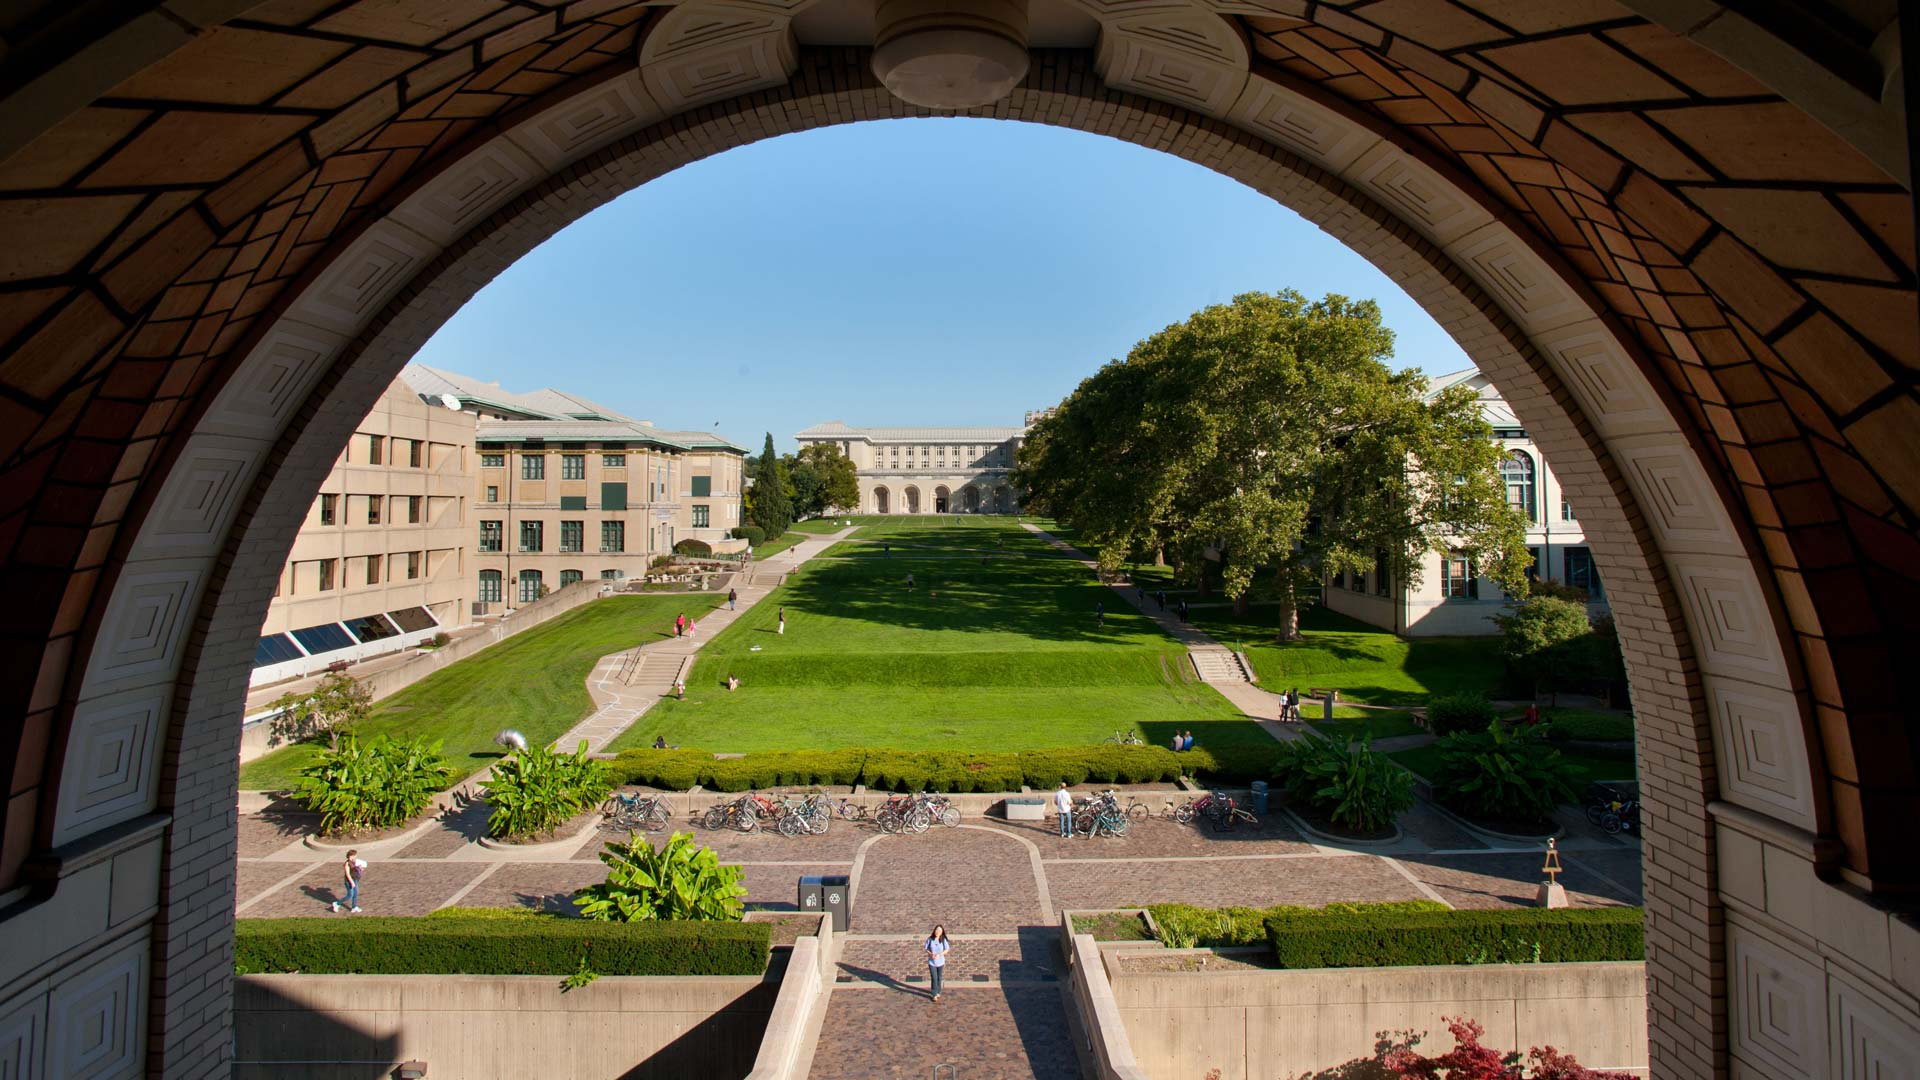 Carnegie_Mellon_University_16x9